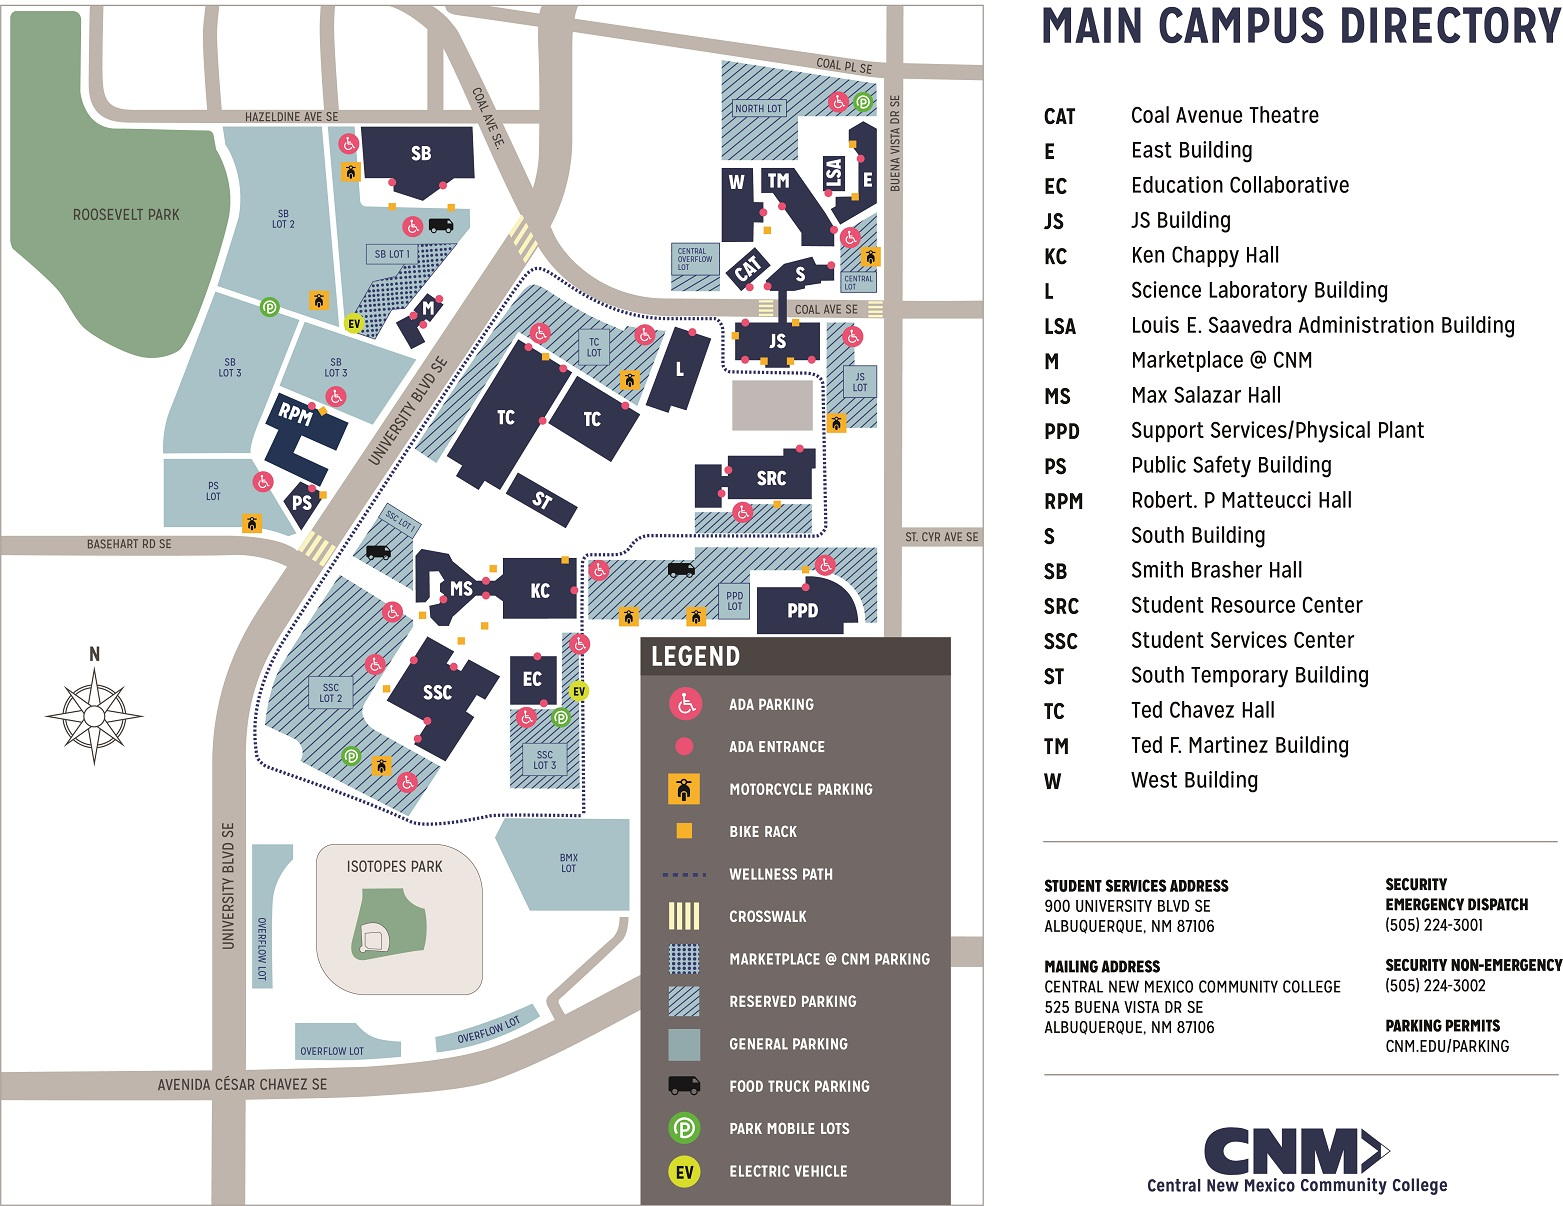 main campus map central new mexico munity college